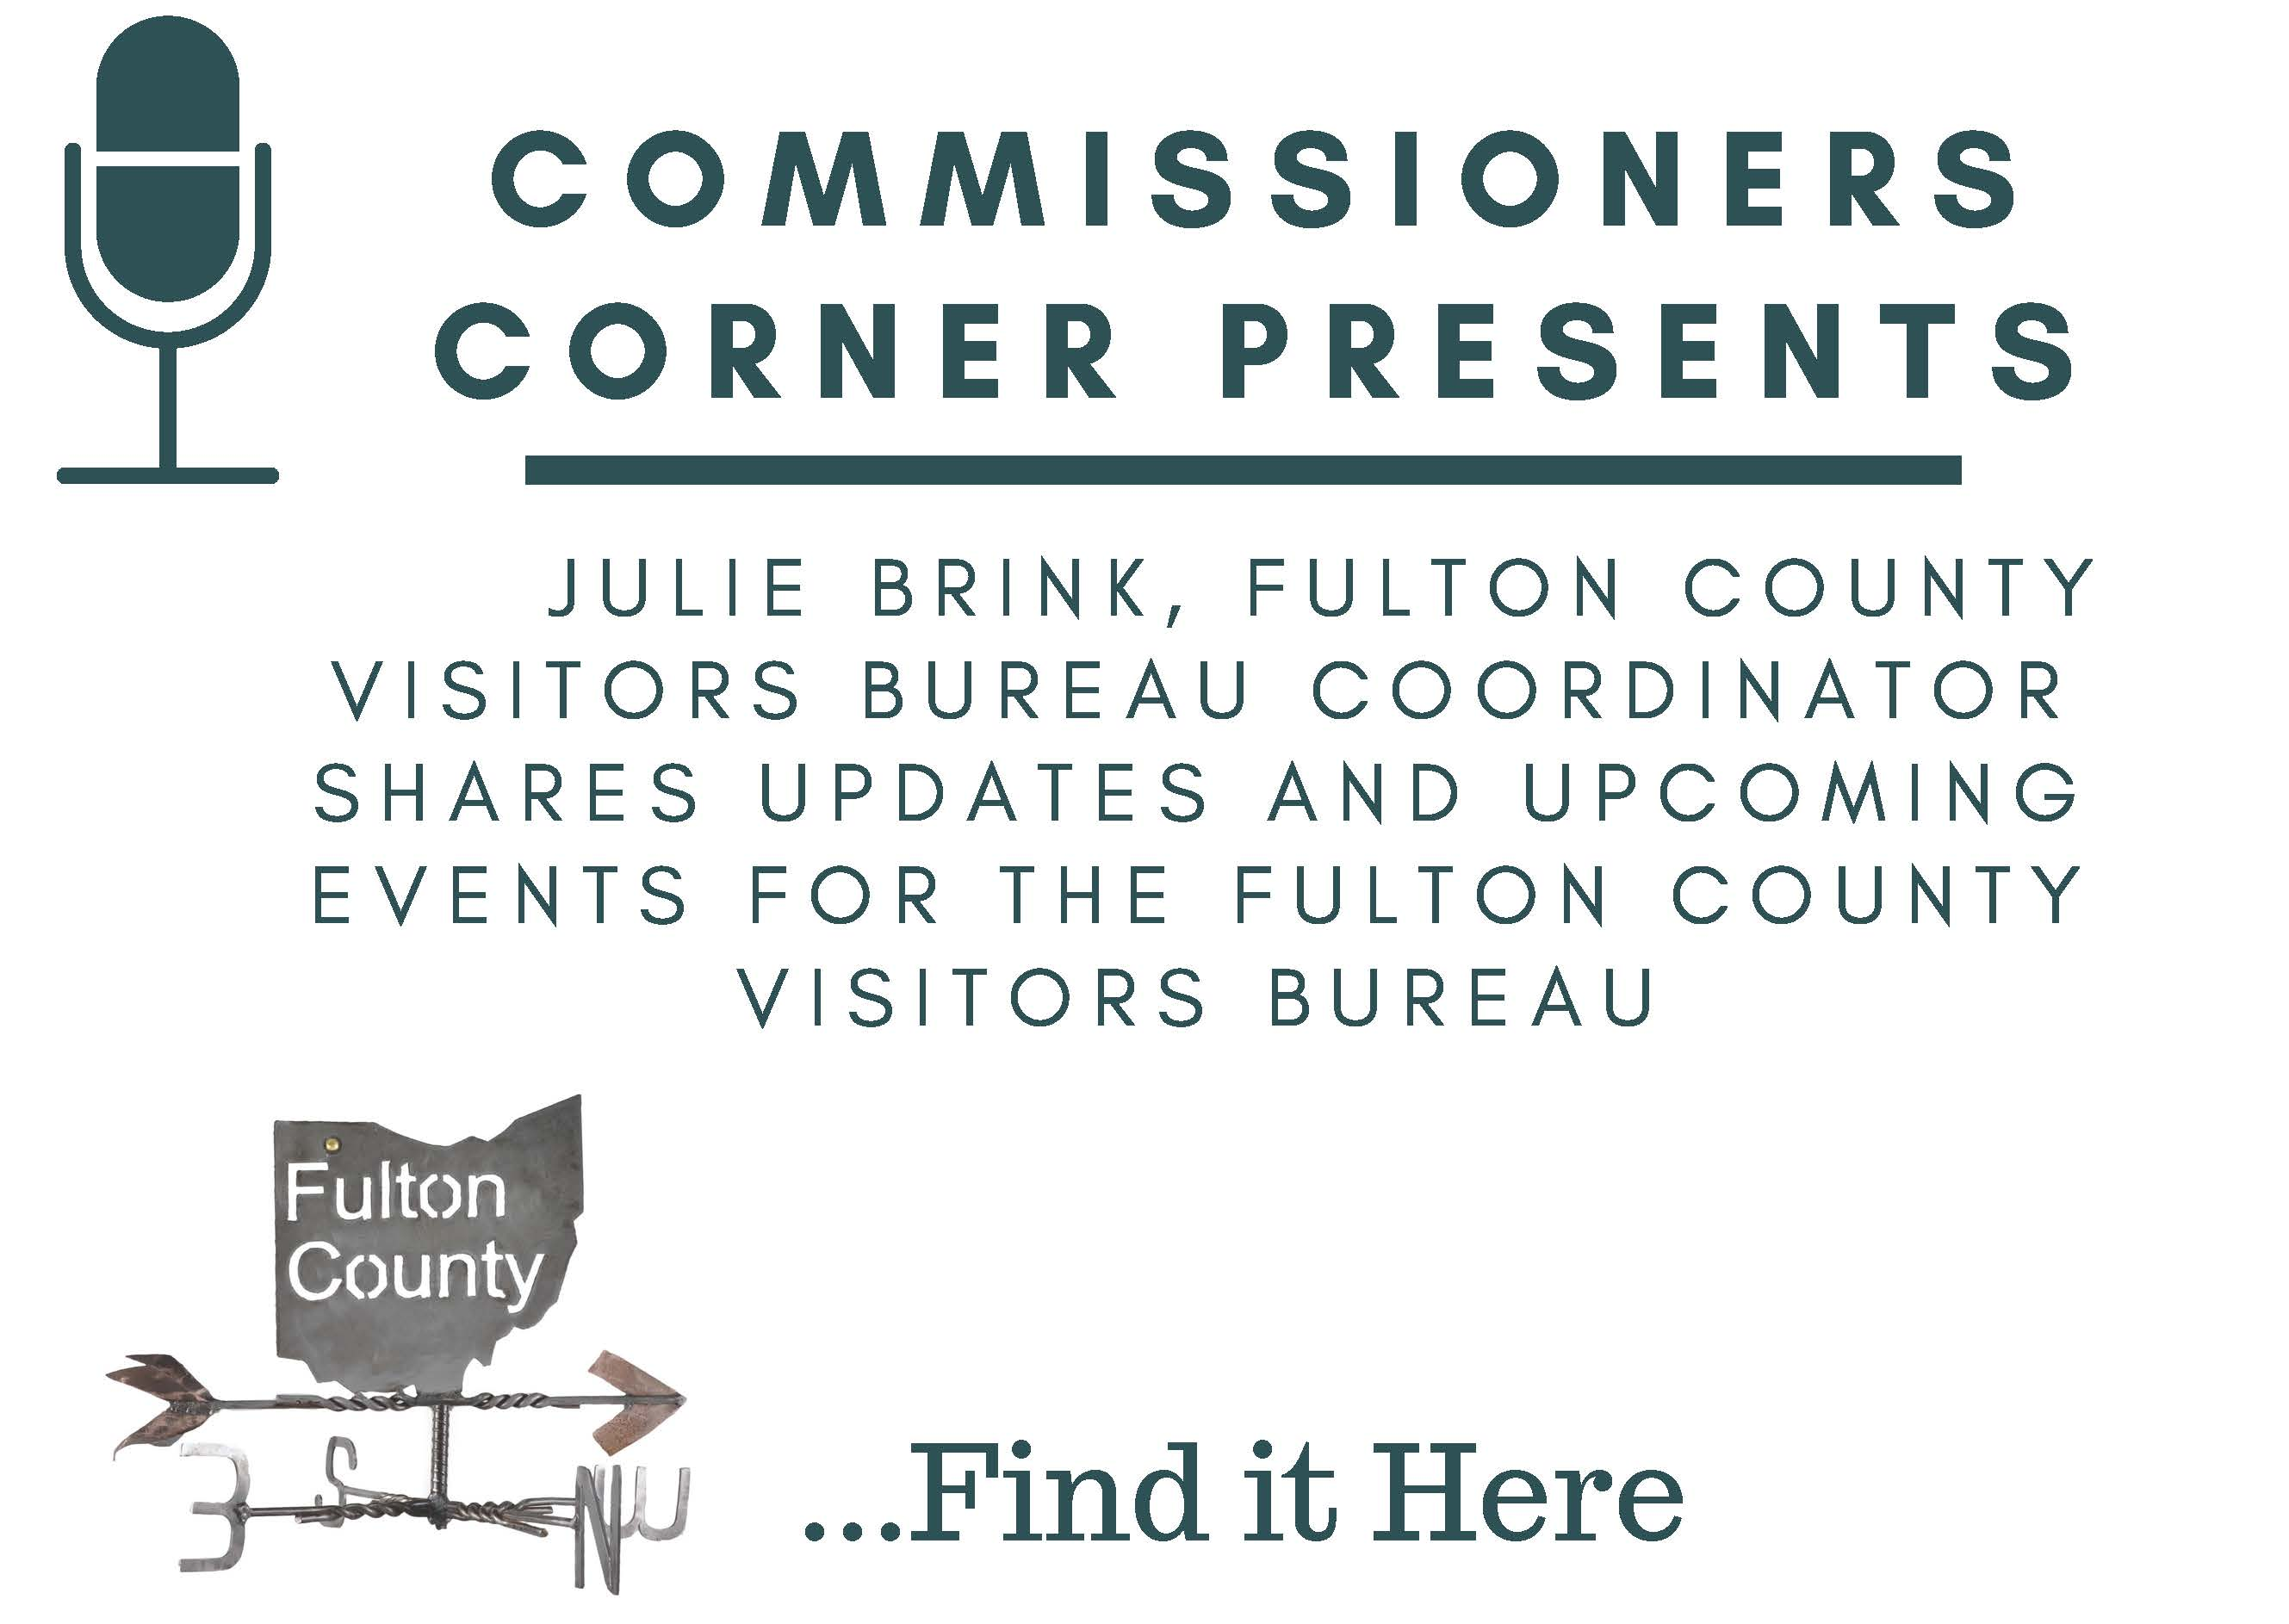 Comissioners Corner Visitors Bureau Summer 2018 Update